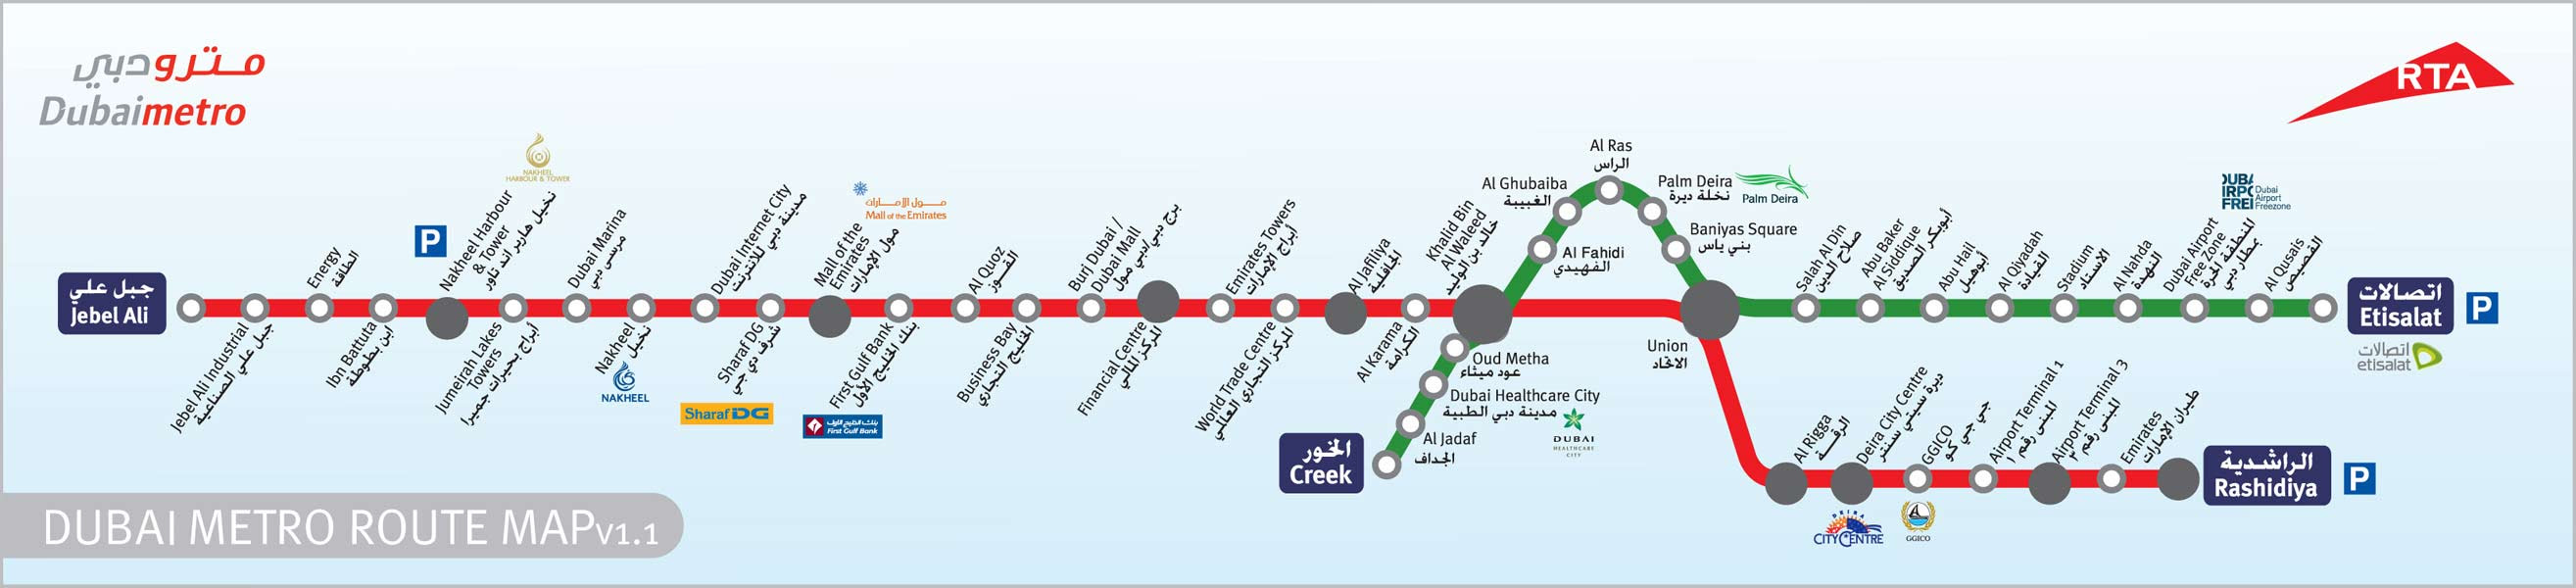 Complete Dubai Metro Map for Travelers Guidance,dubai metro map 2012,dubai metro map download,dubai metro green line map,dubai metro map red line,dubai metro map pdf,metro services dubai,dubai metro map open stations,dubai metro map zone,dubai metro route map,dubai metro stations map, dubai metro Rail System,dubai metro Lines